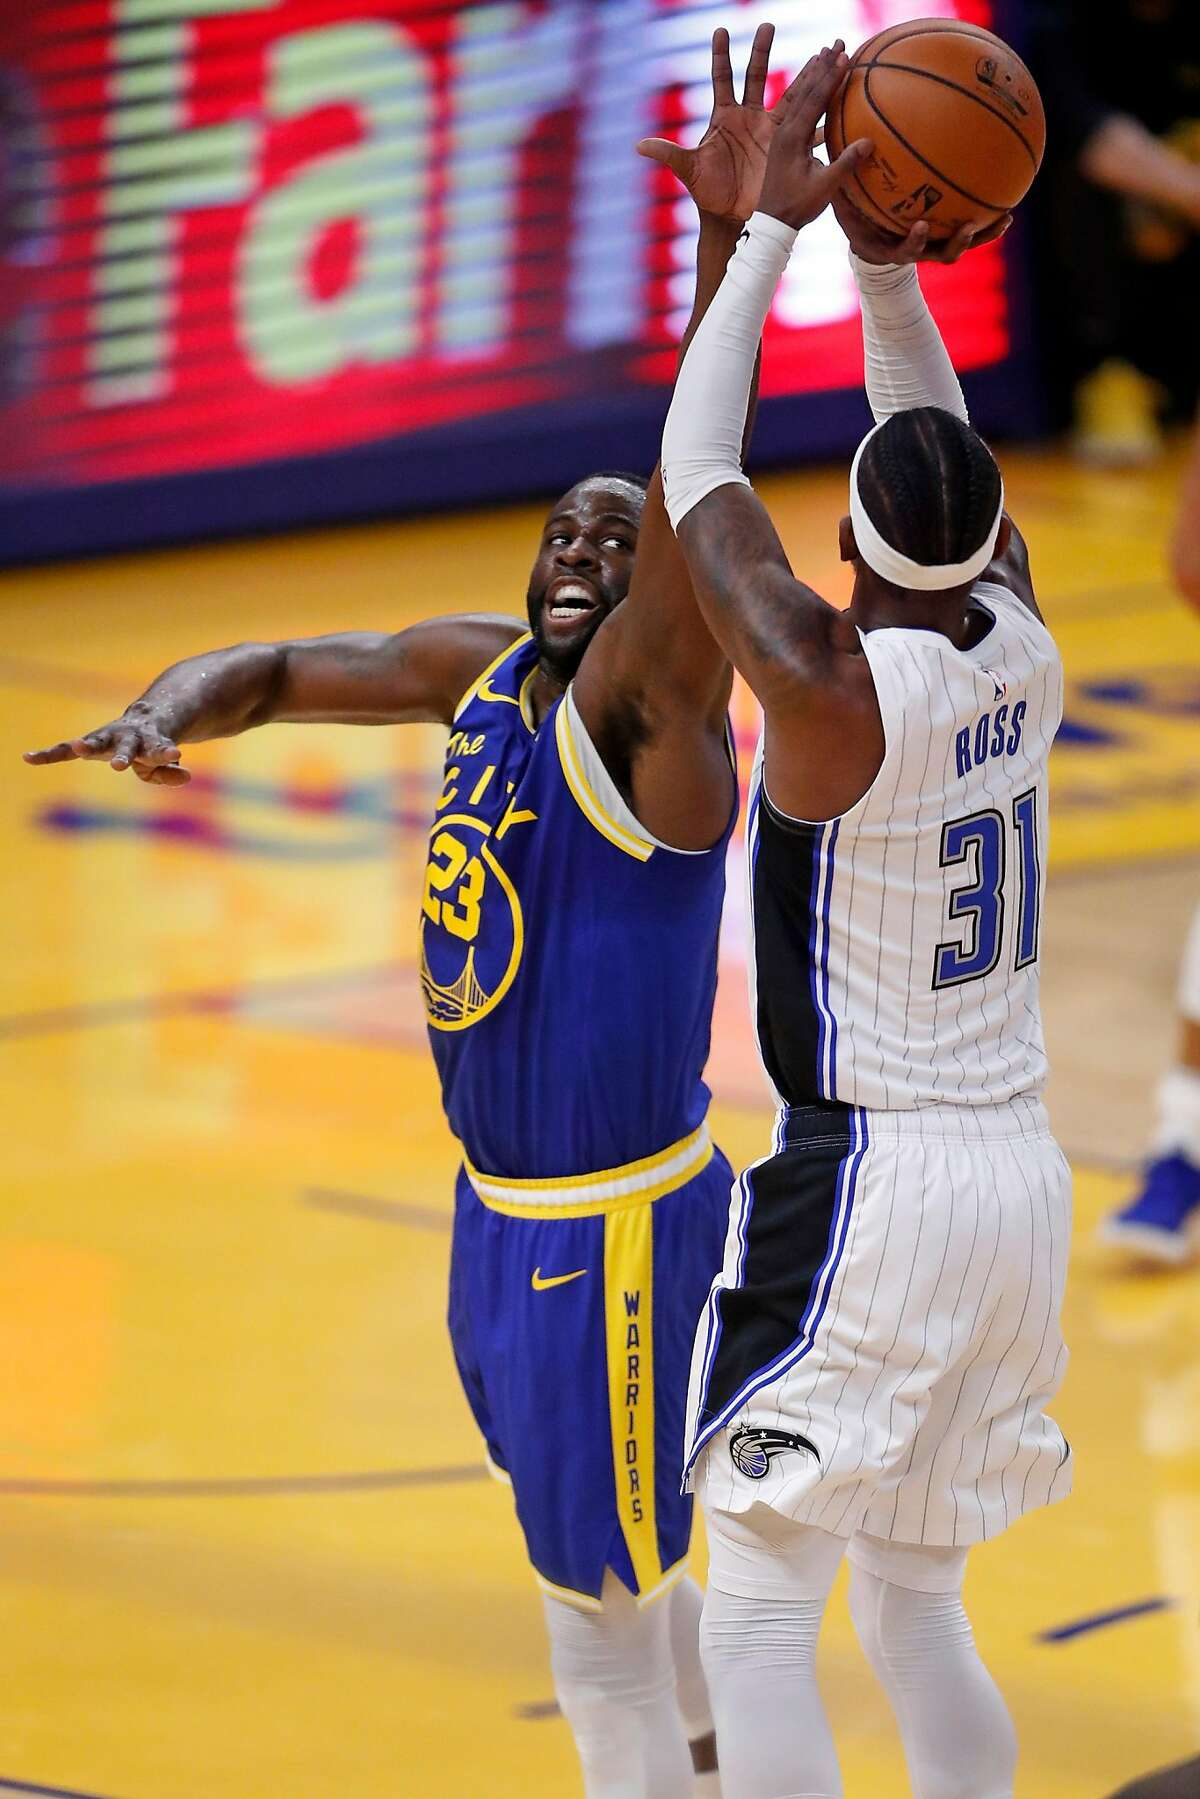 Golden State Warriors' Draymond Green defends against Orlando Magic's Terrence Ross in 1st quarter during NBA game at Chase Center in San Francisco, Calif., on Thursday, February 11, 2021.